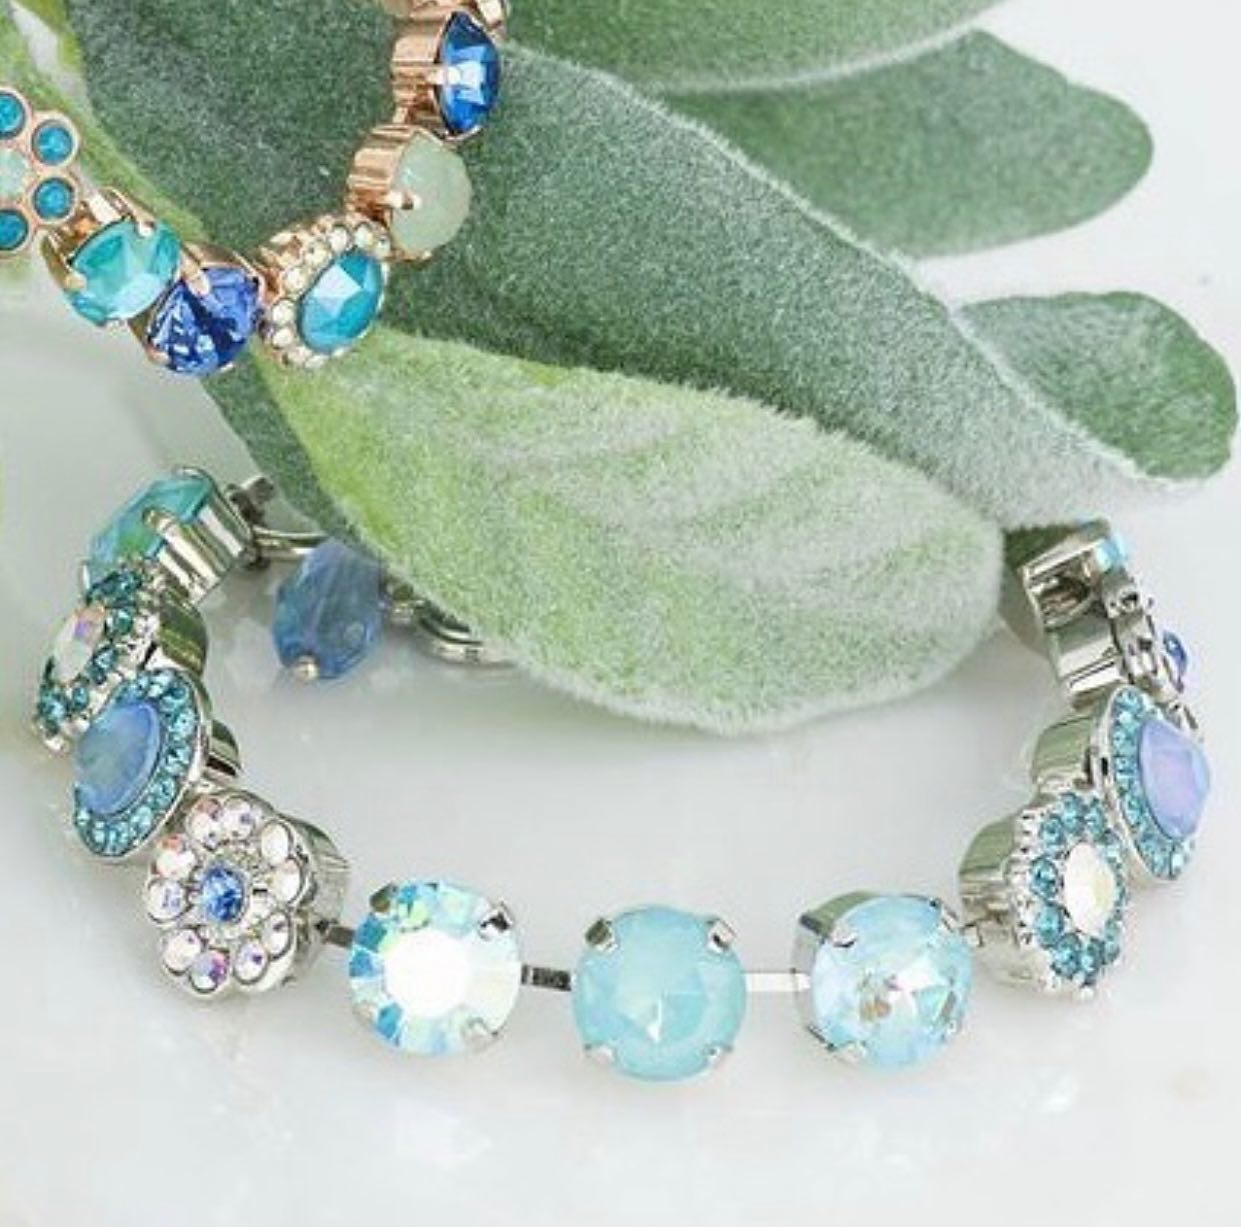 Need Jewelry for a Big Event?